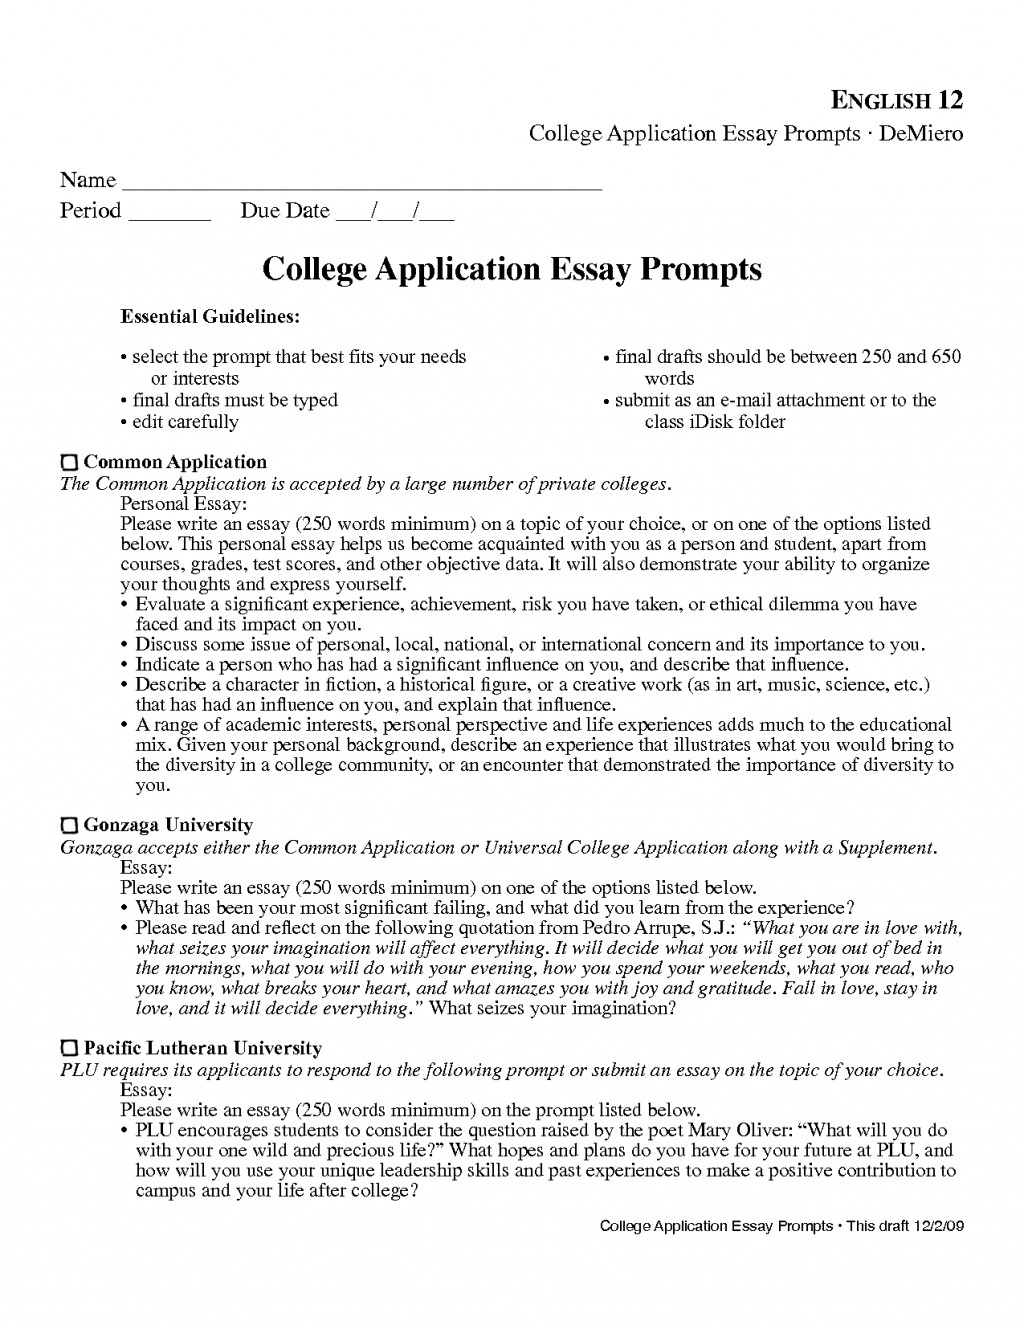 004 Essay Prompt Example When Do The Common App Prompts Come Out Poemsrom Co Writing Examples For Middle School College Format Printables Corner In Applic 4th Grade 3rd Uc High Fascinating Generator Romance 5th Large